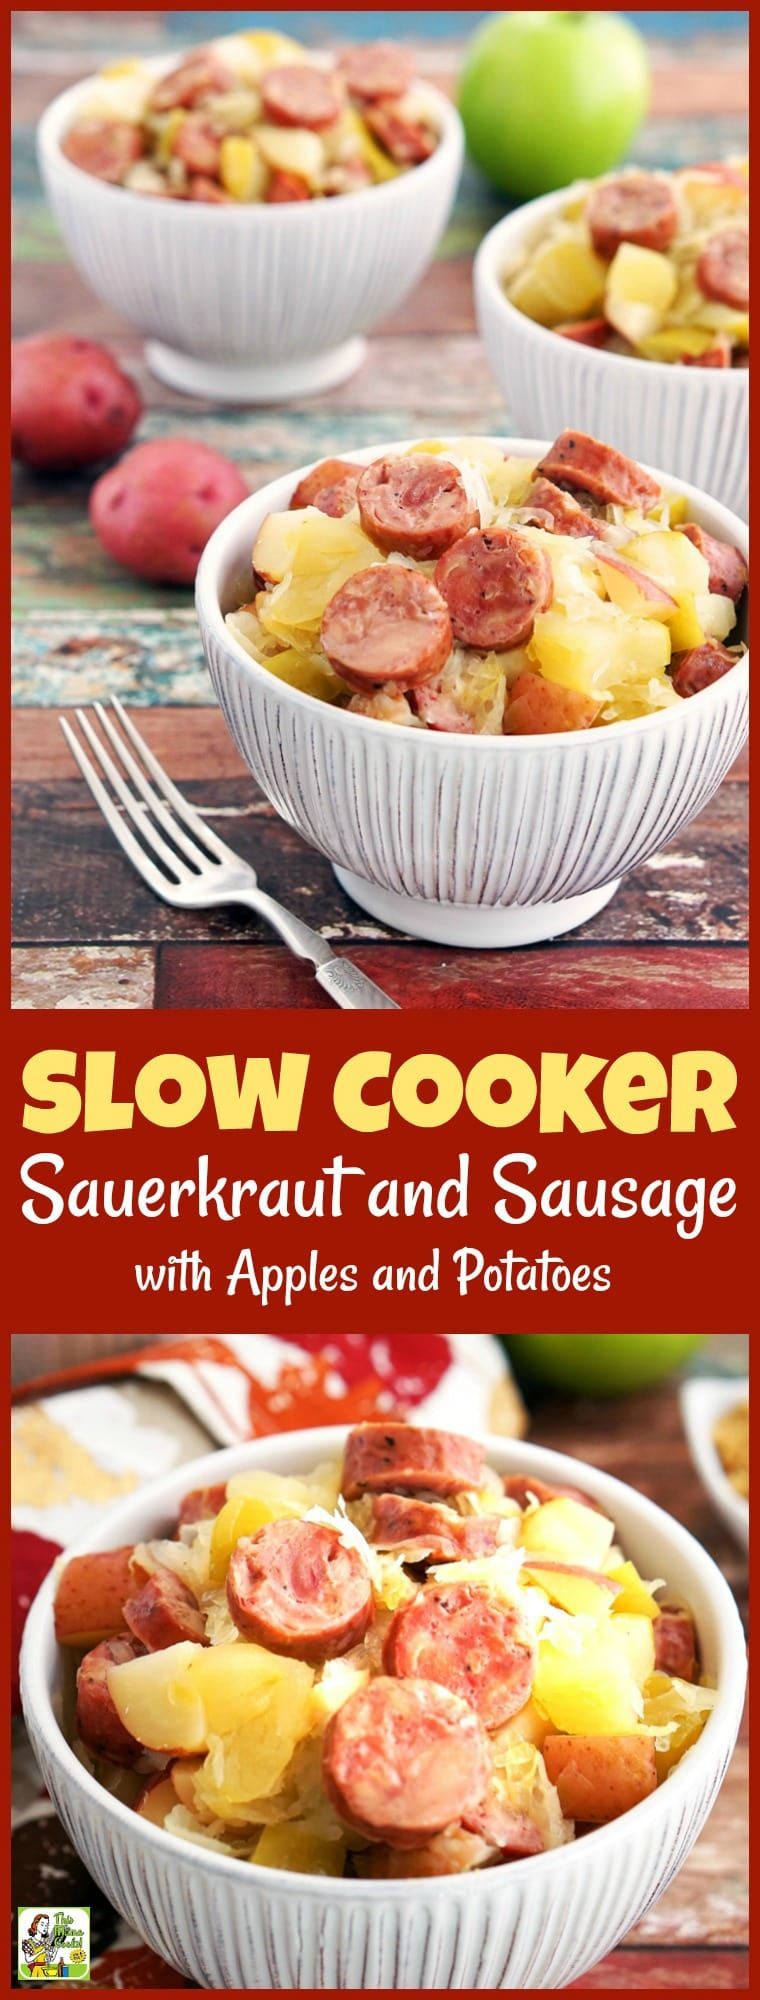 Are you looking for a gluten free Crock-Pot recipe? This Slow Cooker Sauerkraut and Sausage with Apples and Potatoes takes only 15 minutes to prepare! Makes a great party or potluck recipe, too. #recipe #easy #recipeoftheday #healthyrecipes #glutenfree #easyrecipes #dinner #easydinner #sausage #sauerkraut #apples #potatoes #slowcooker #crockpot